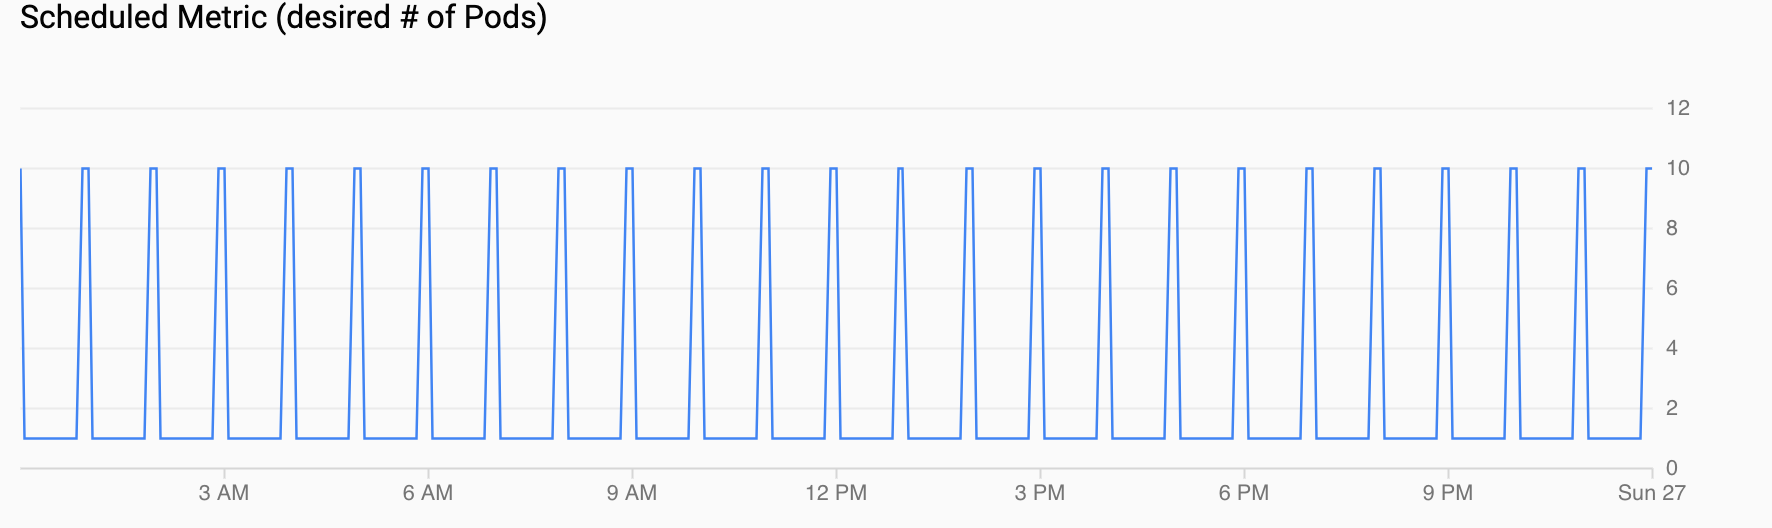 Graph of demand for Pods, showing a spike every hour.